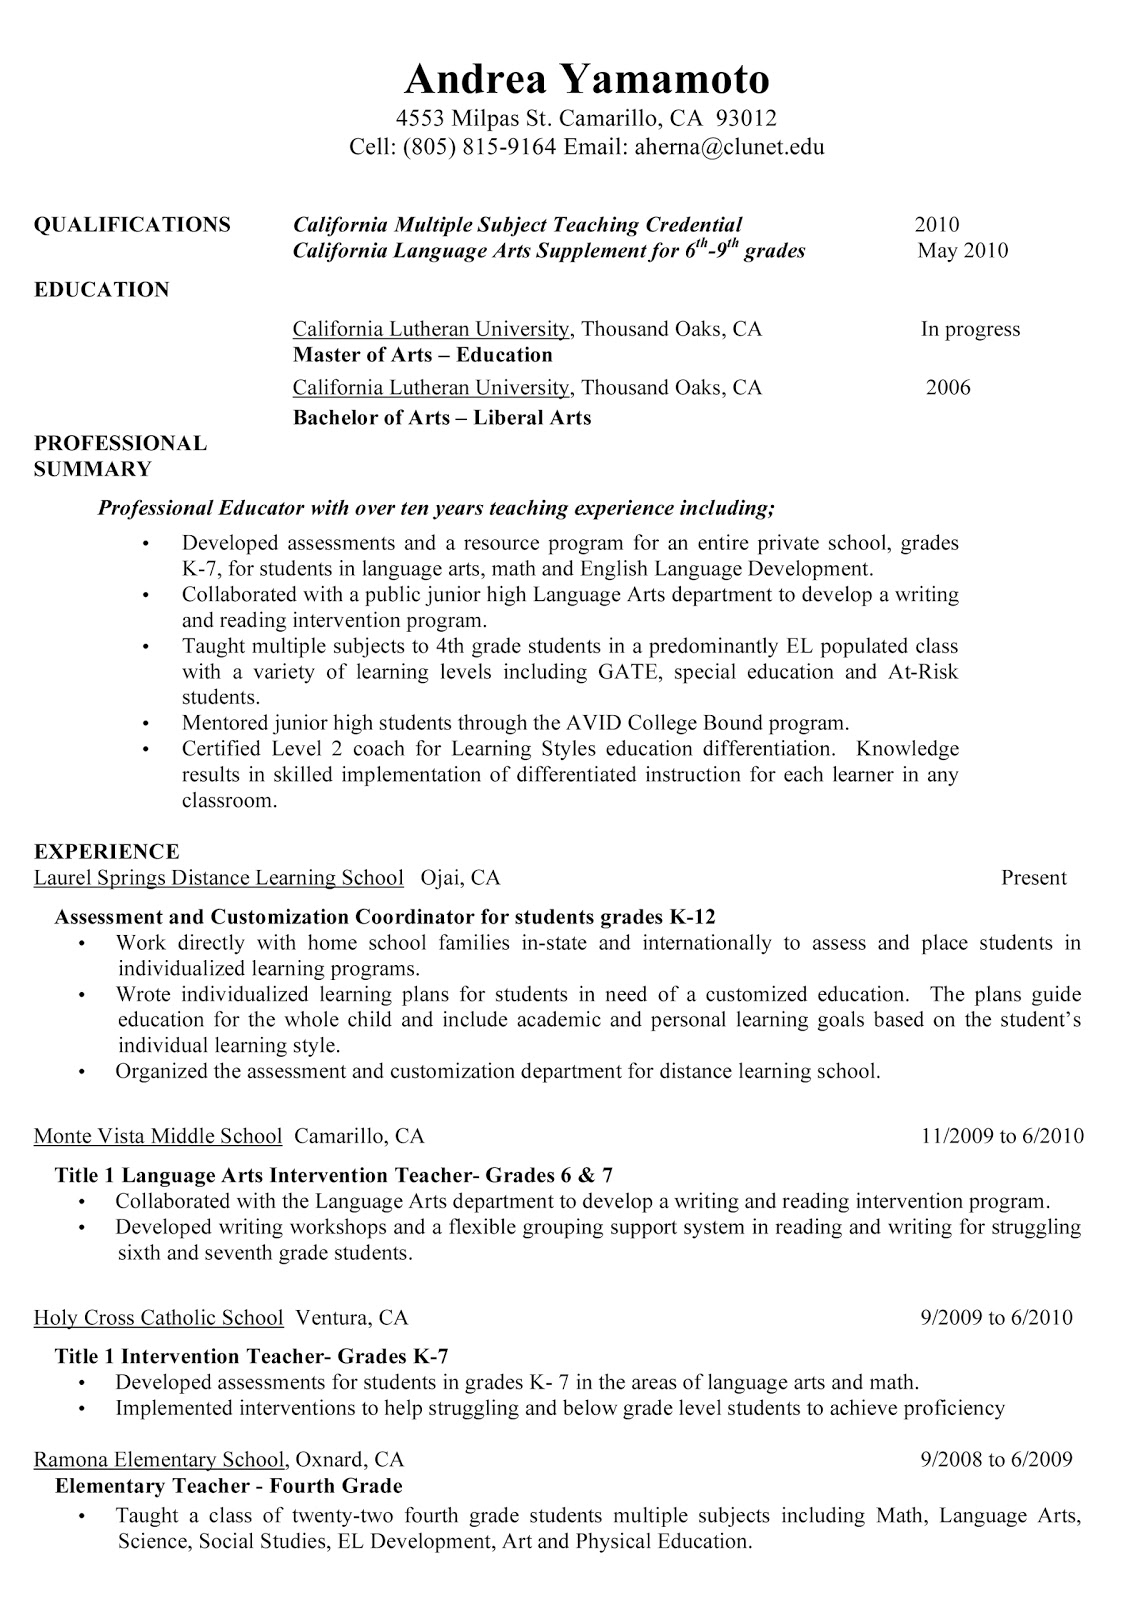 Sample Resume For Electrician Electrician Resume Electrician Happytom Co  Electrician Resume Example Sample Journeyman Electrician Resume  Profile On A Resume